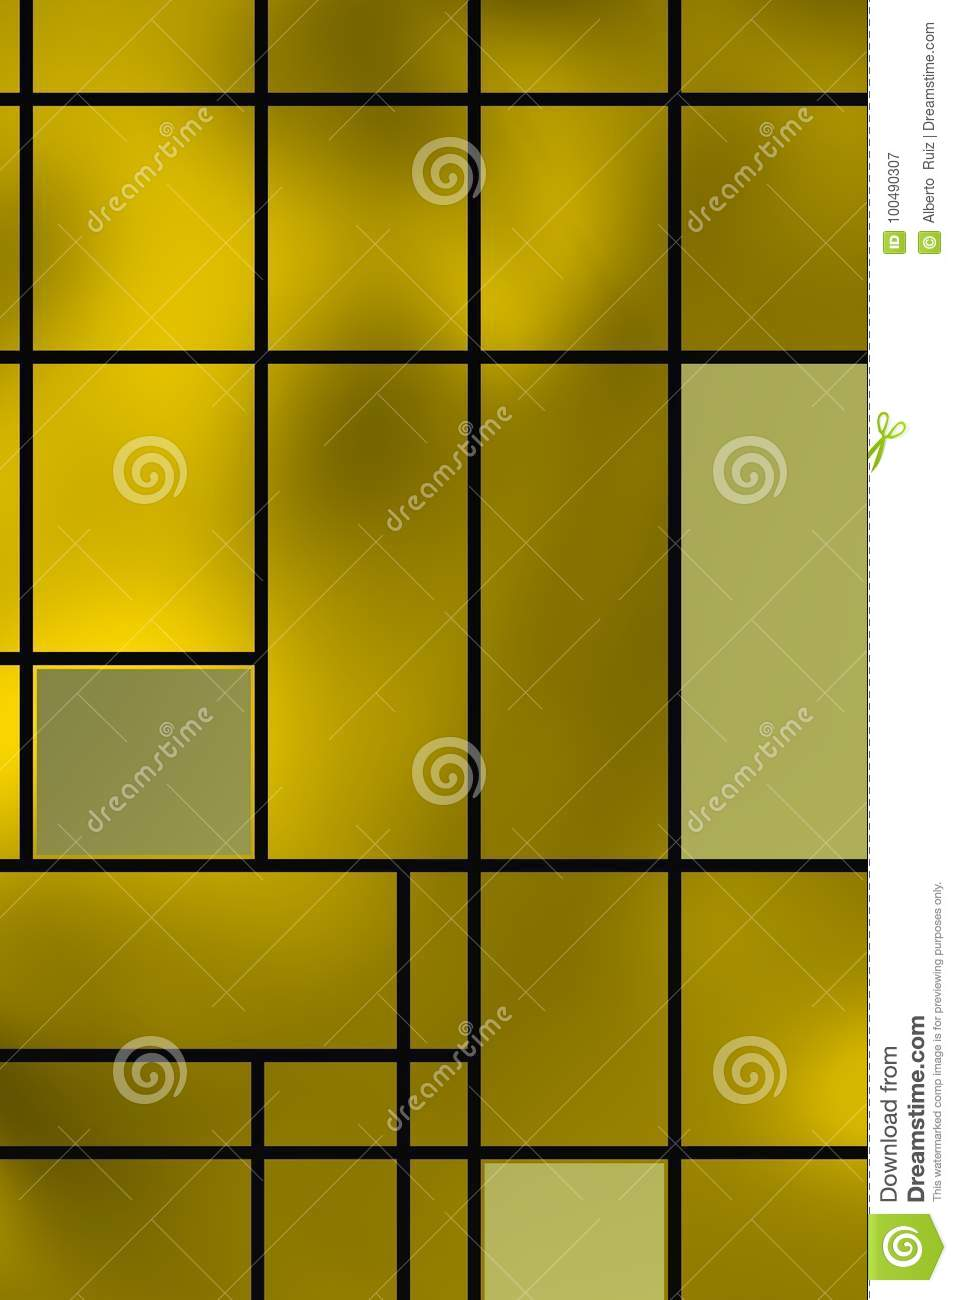 Geometric Shapes Over Yellowish Backlight. Stock Image - Image of ...